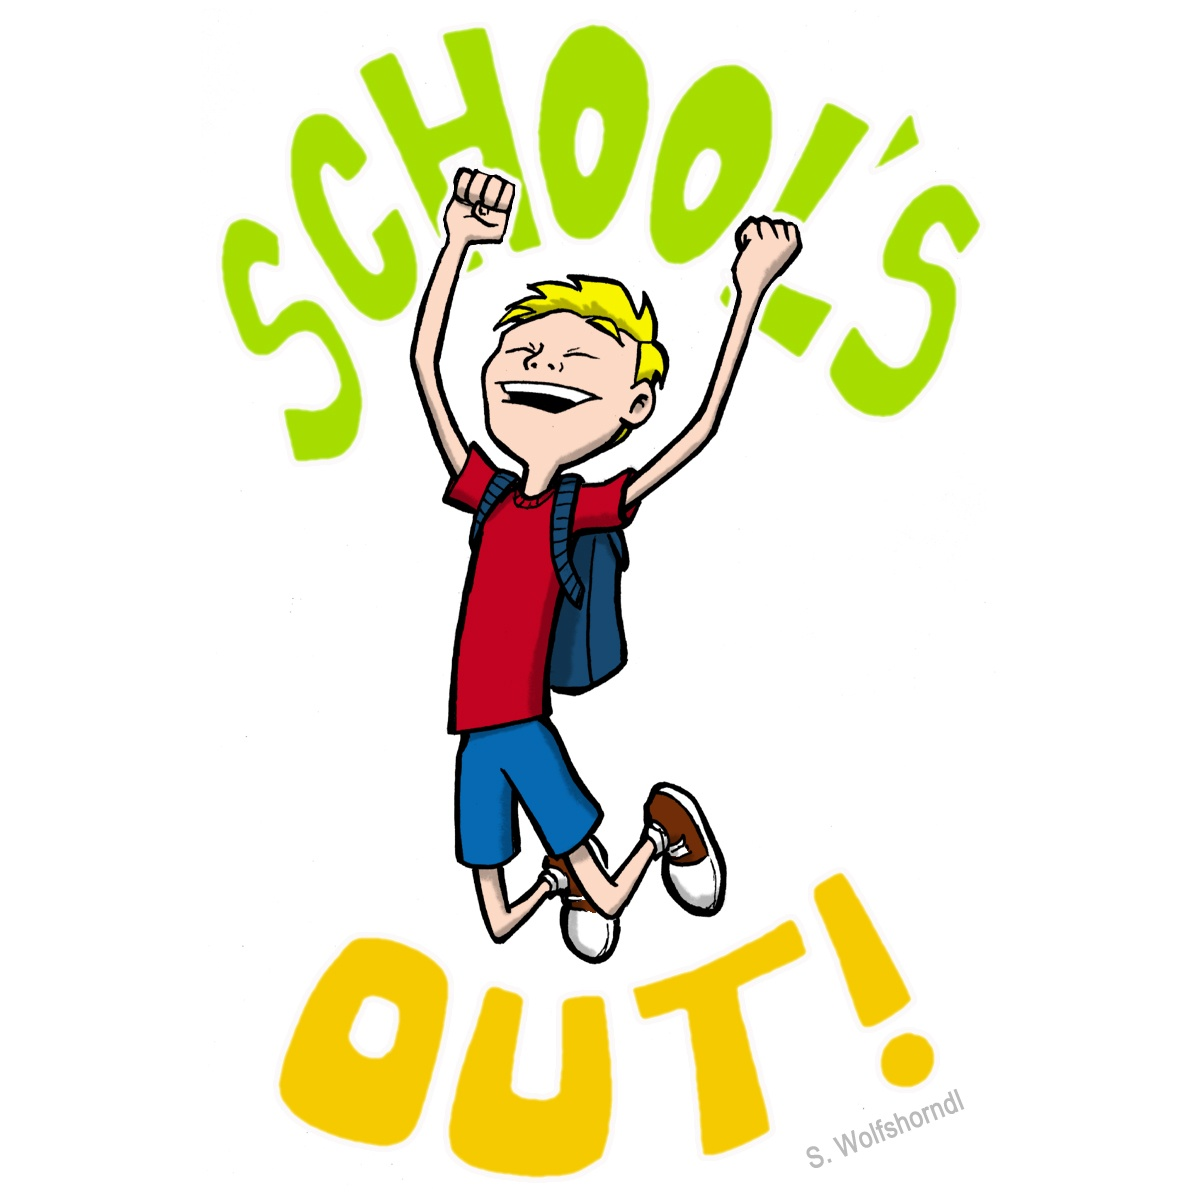 last day of school clip art clipart best last day of school clip art png last day of school clip art and quotation